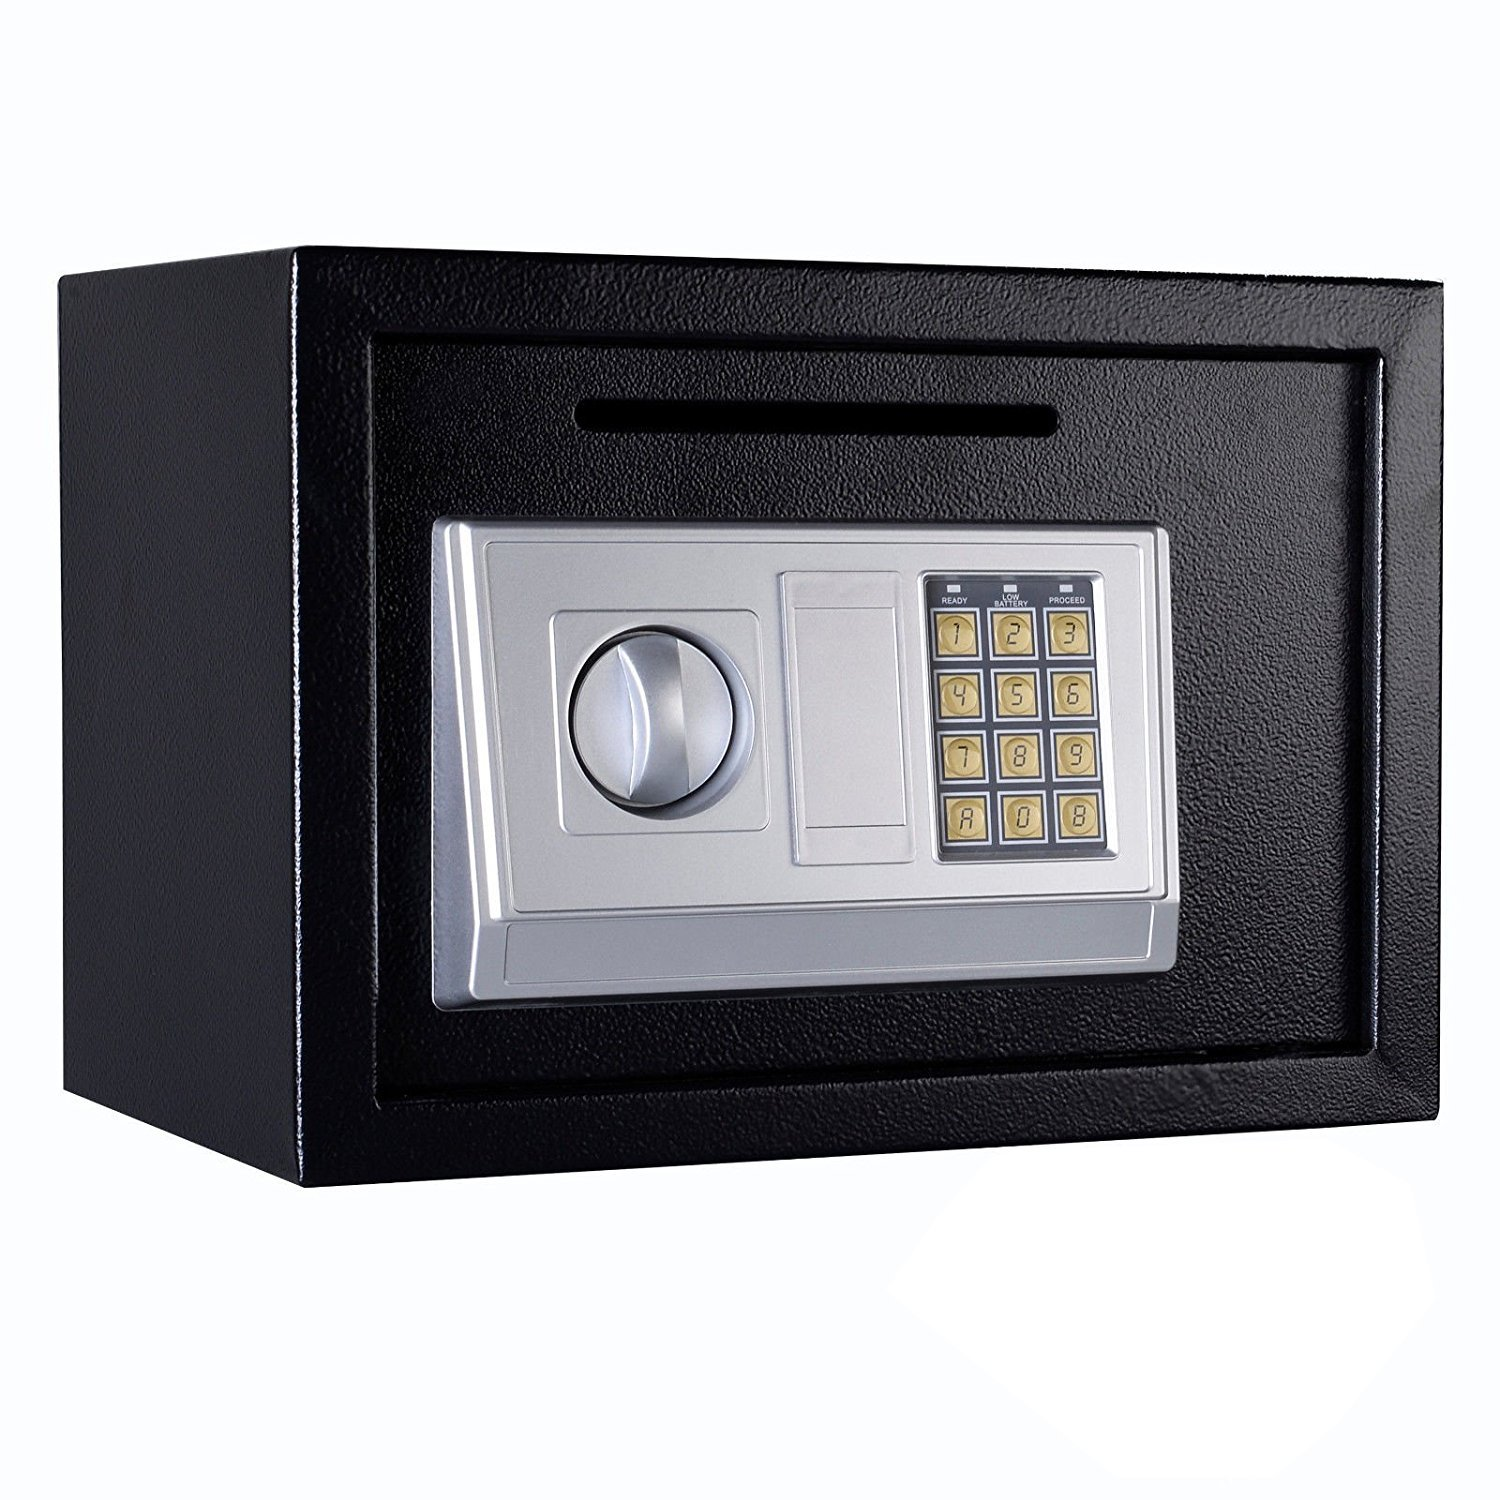 Safe Box Electronic Digital Lock for Valuable Storage with Posting Slot, 0.8 Cubic Feet